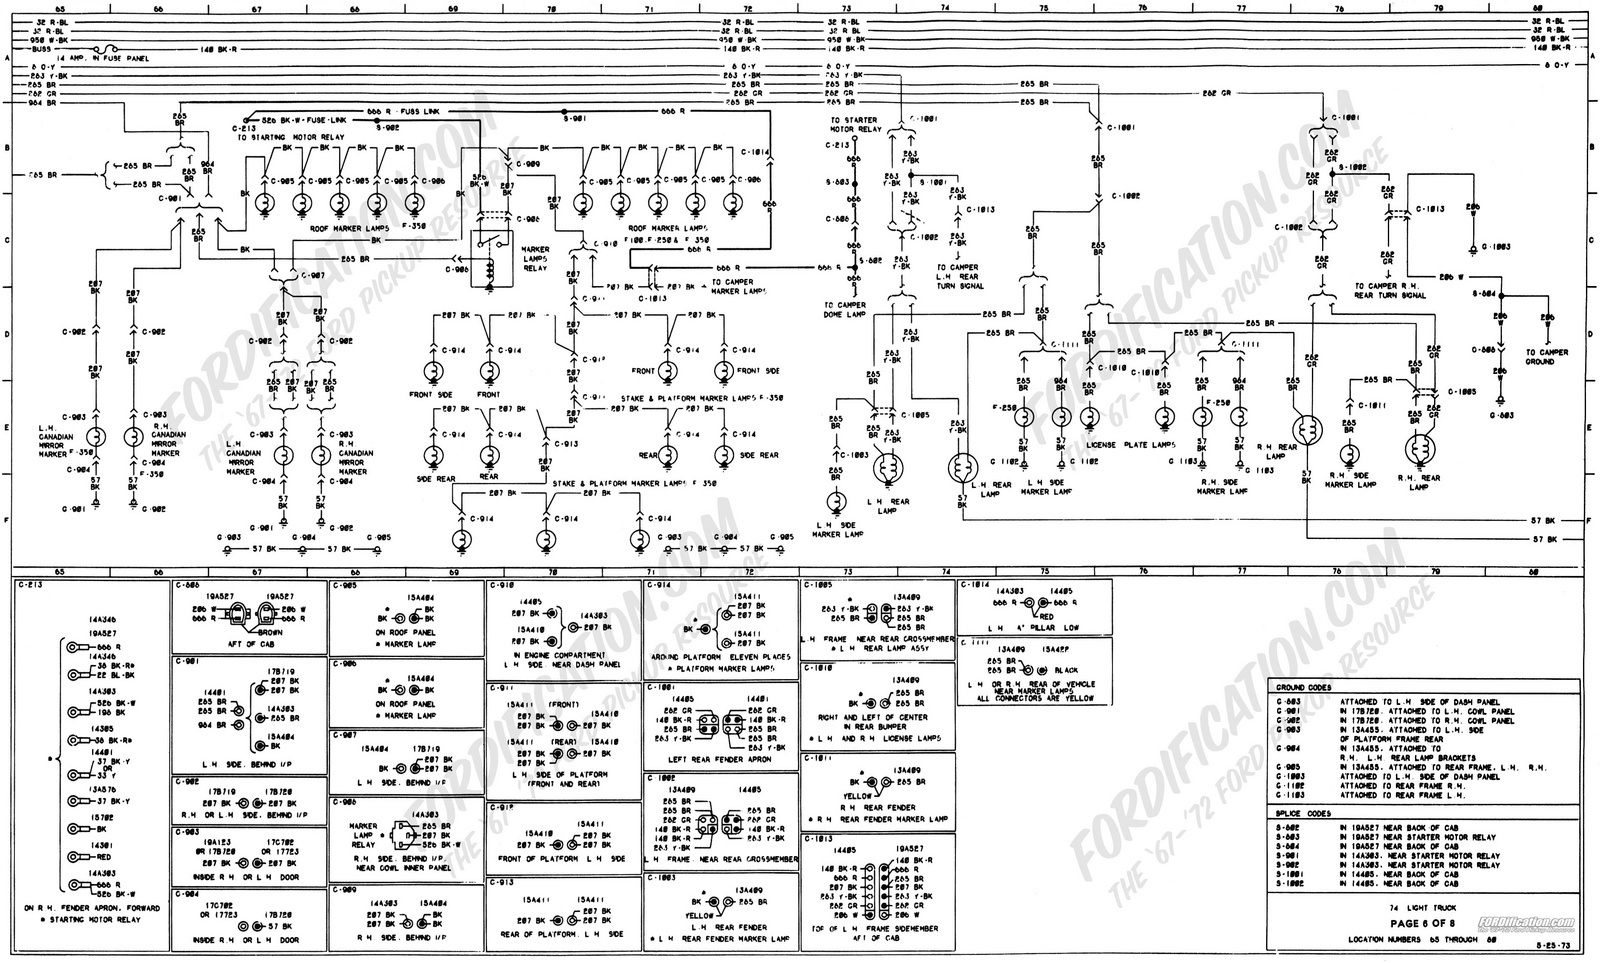 1977 ford wiring harness wiring diagram fascinating 1977 ford truck wiring harness wiring diagram 1977 ford f250 wiring harness 1977 ford wiring harness